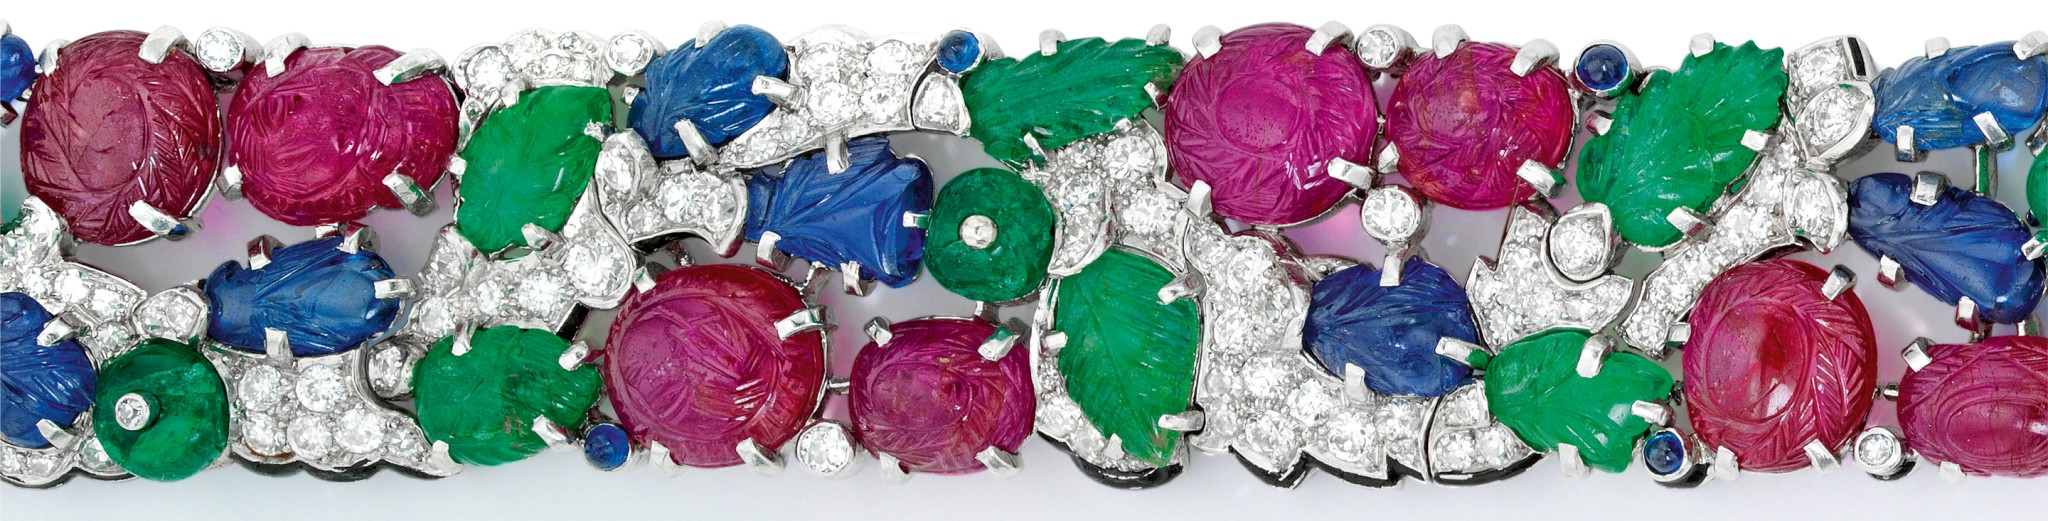 Art Deco Cartier Bracelet Sells For $1.34 Million At Sotheby's